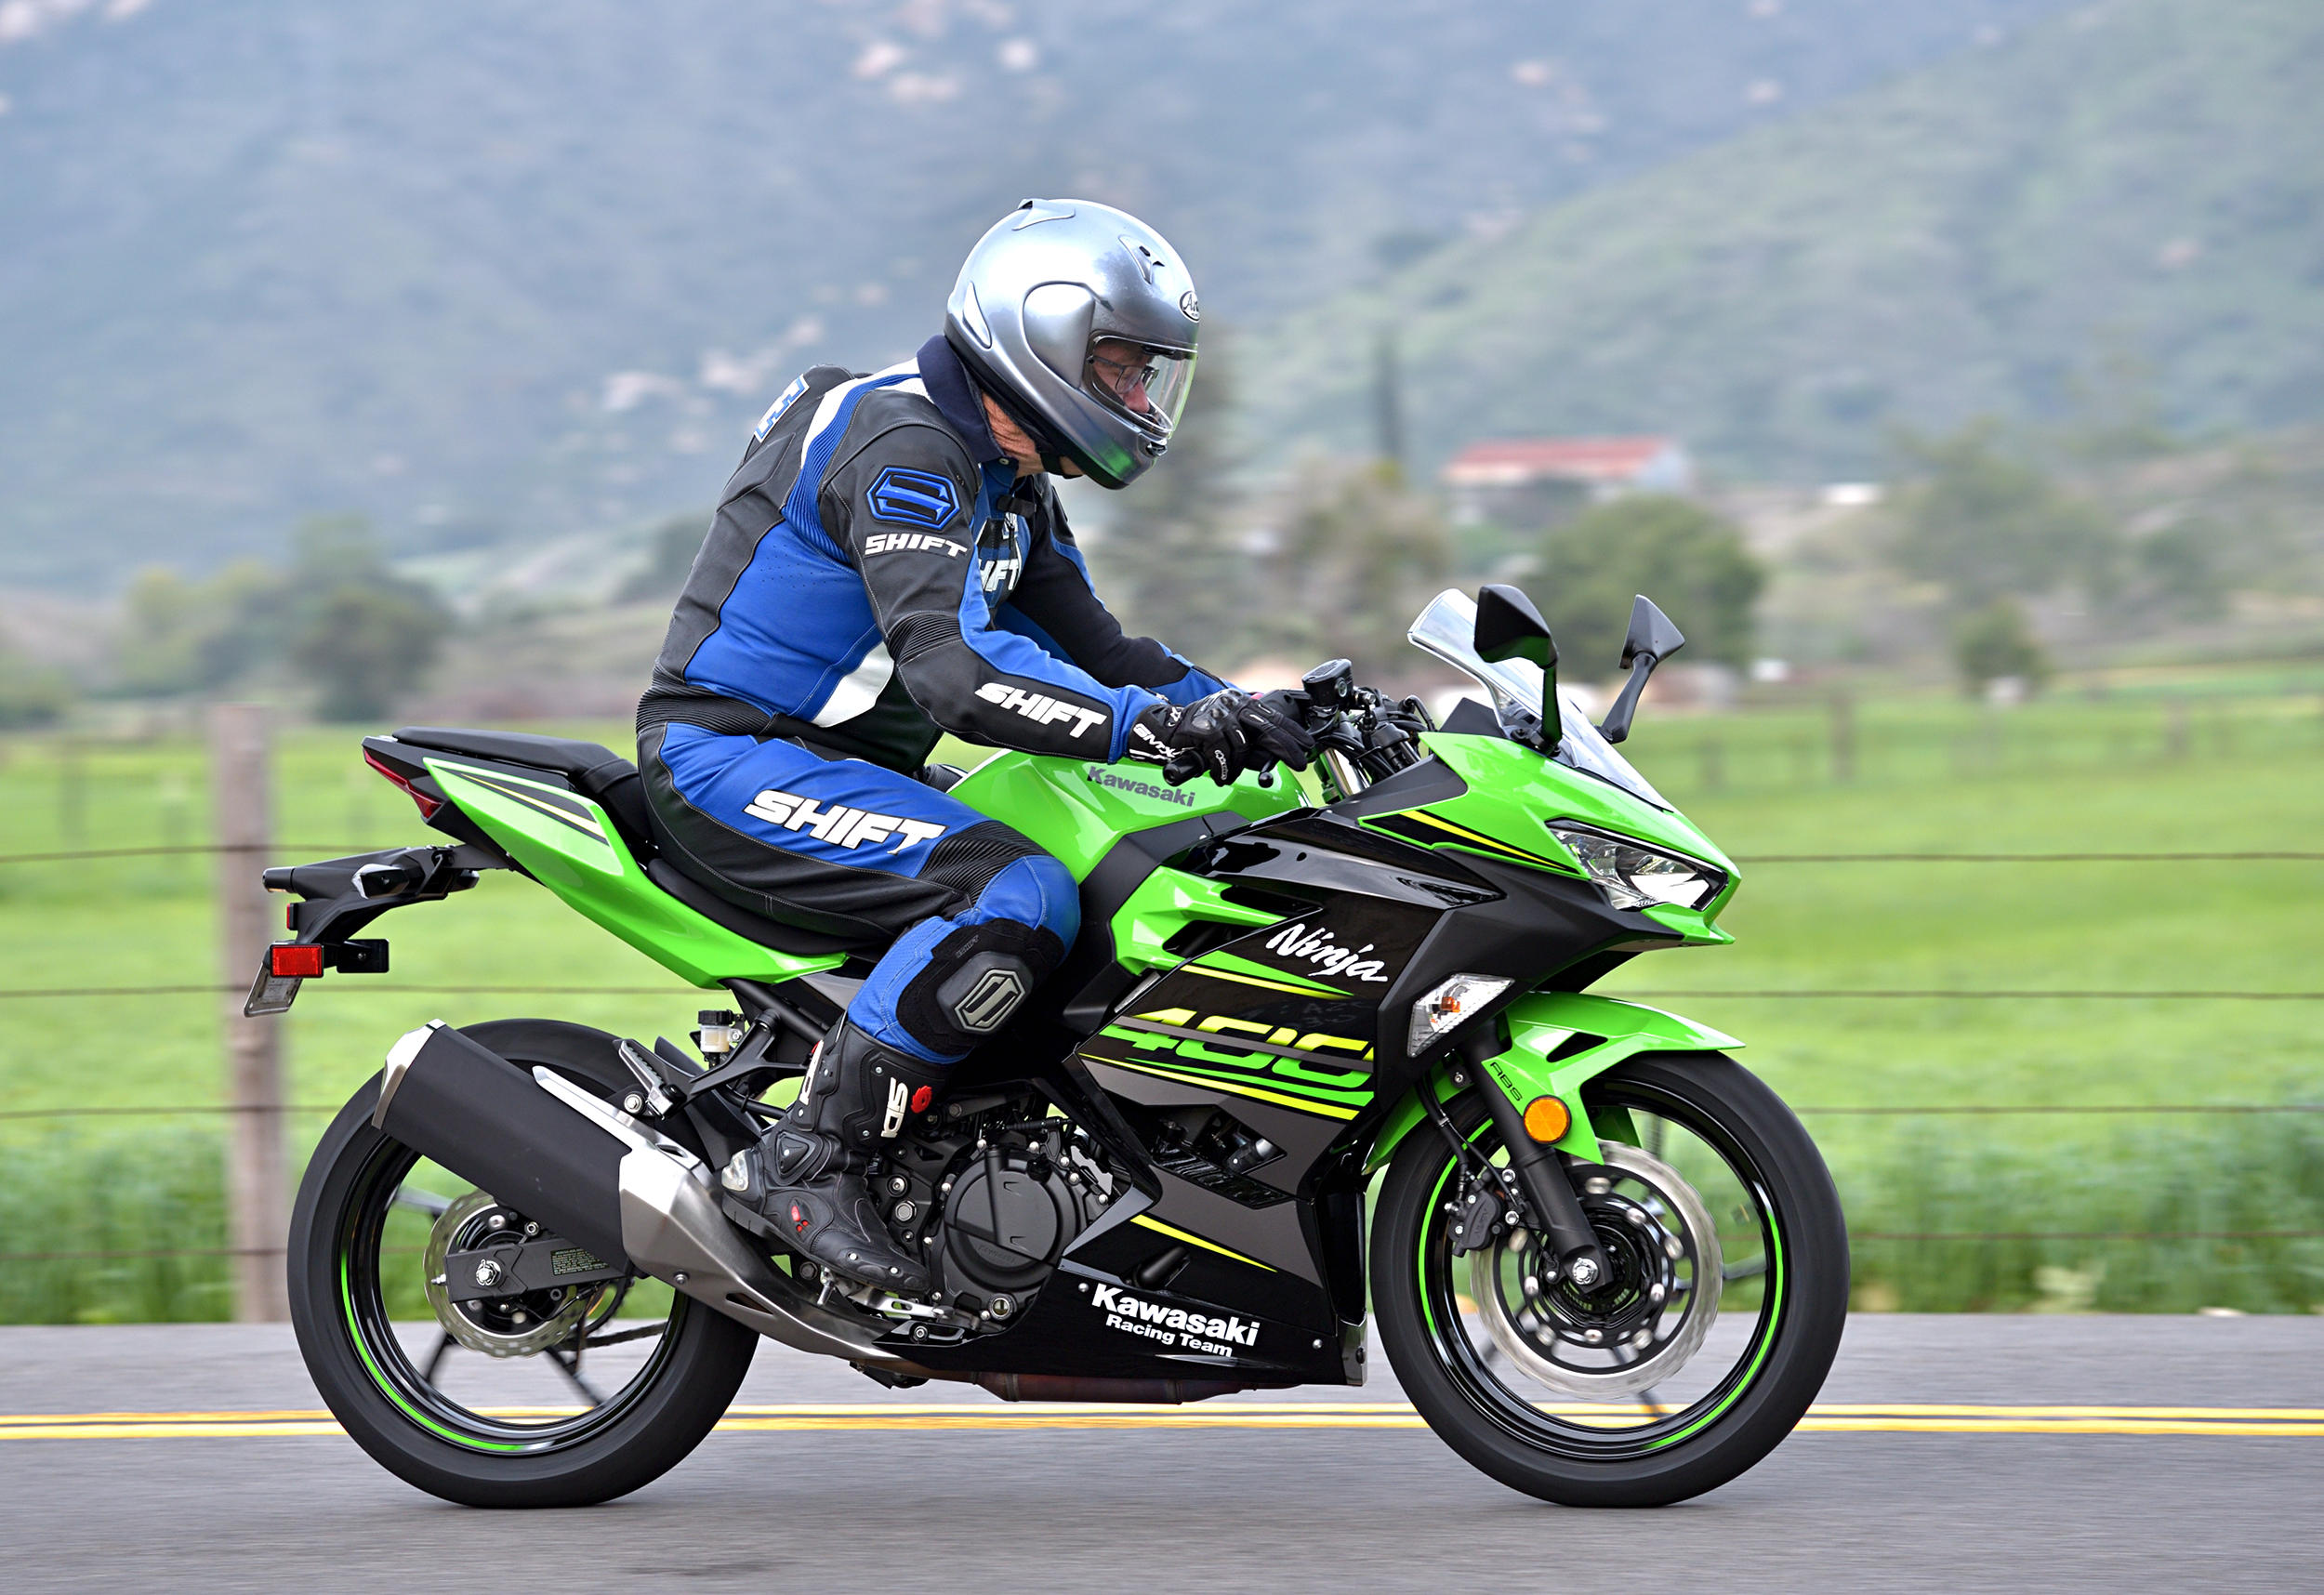 2018 Kawasaki Ninja 400 Abs Md Ride Review Motorcycledailycom